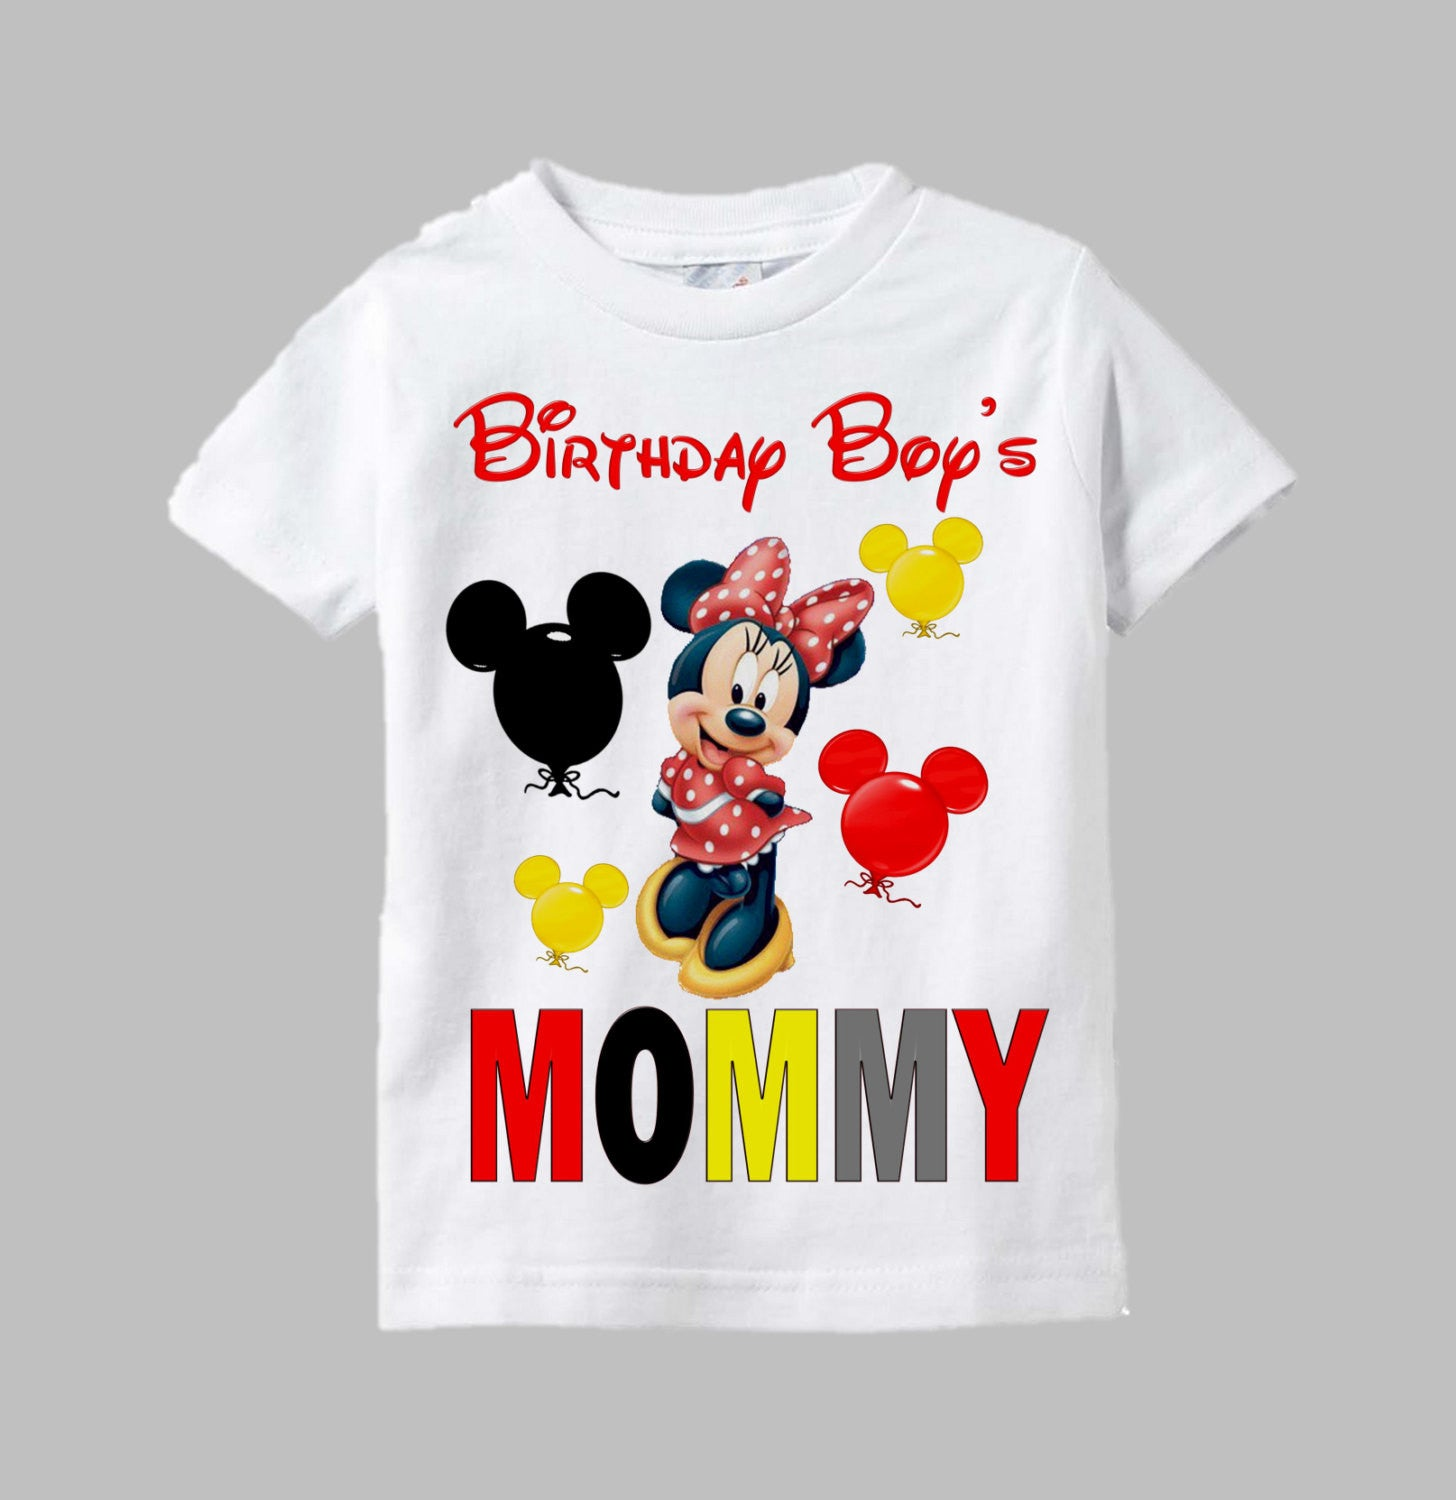 Mickey and minnie mouse birthday shirts